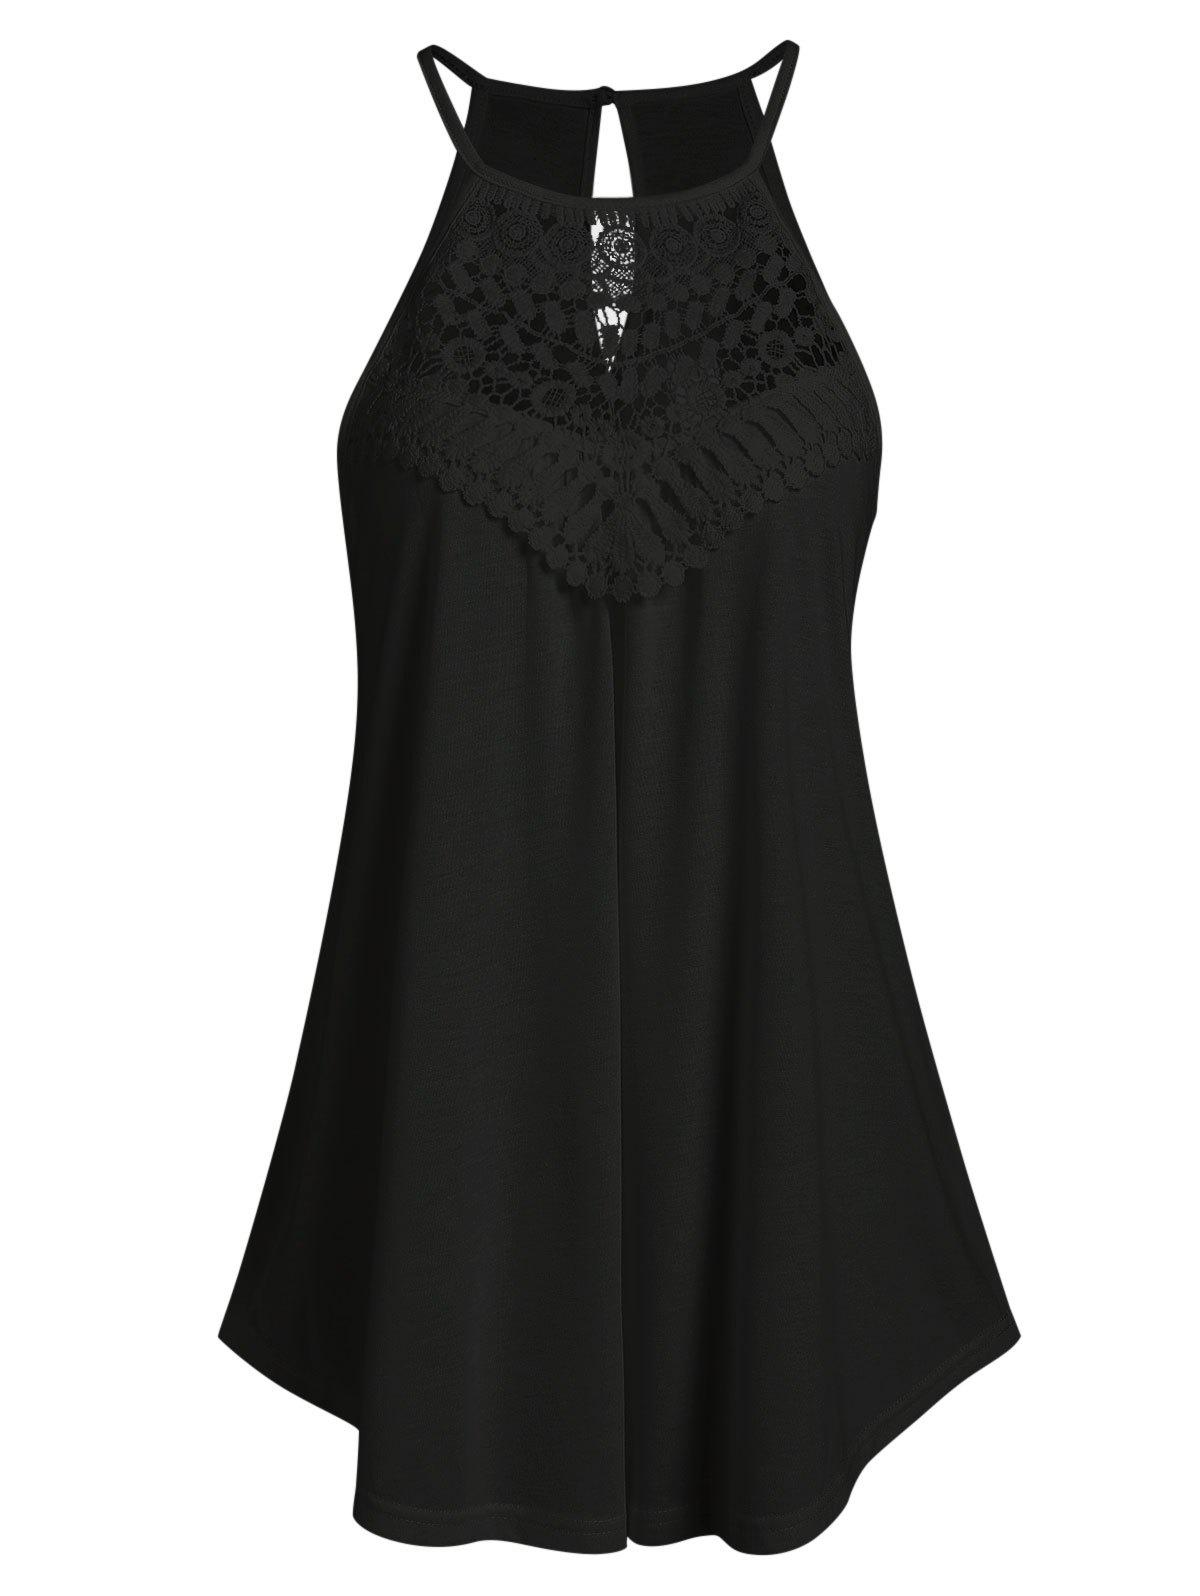 Shops Cut Out Lace Insert Cami Top